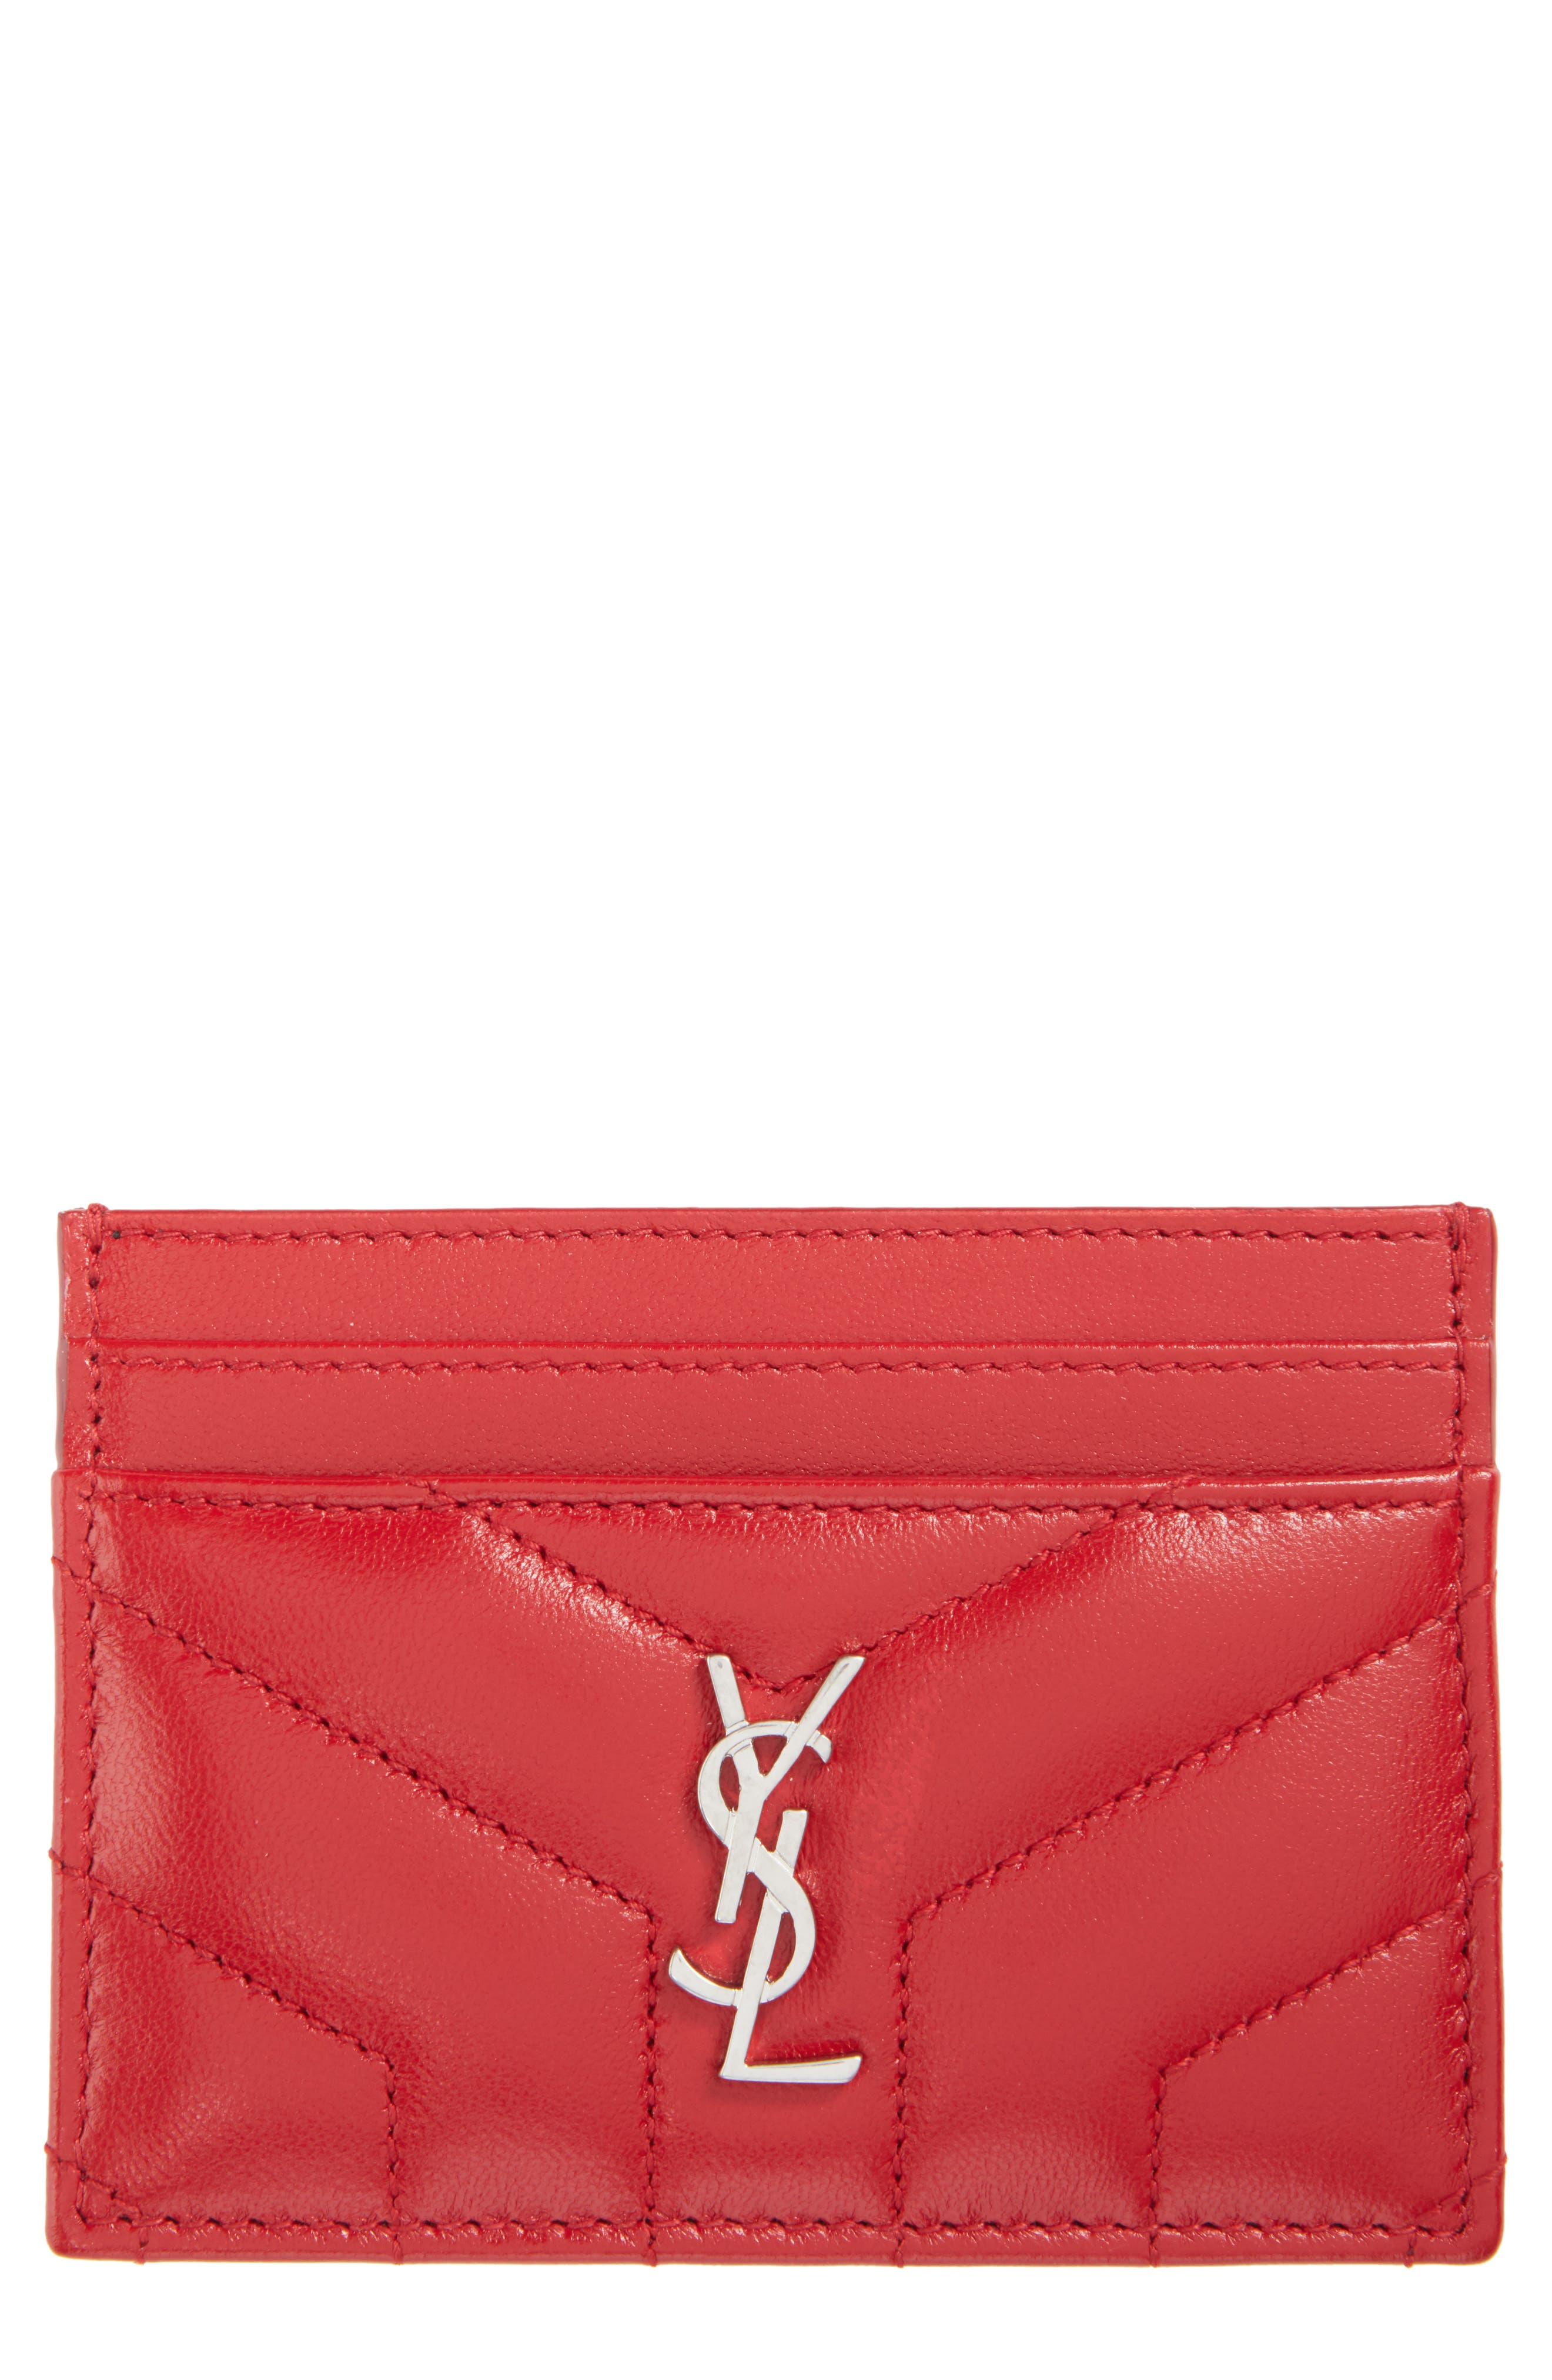 Alternate Image 1 Selected - Saint Laurent Loulou Monogram Quilted Leather Credit Card Case